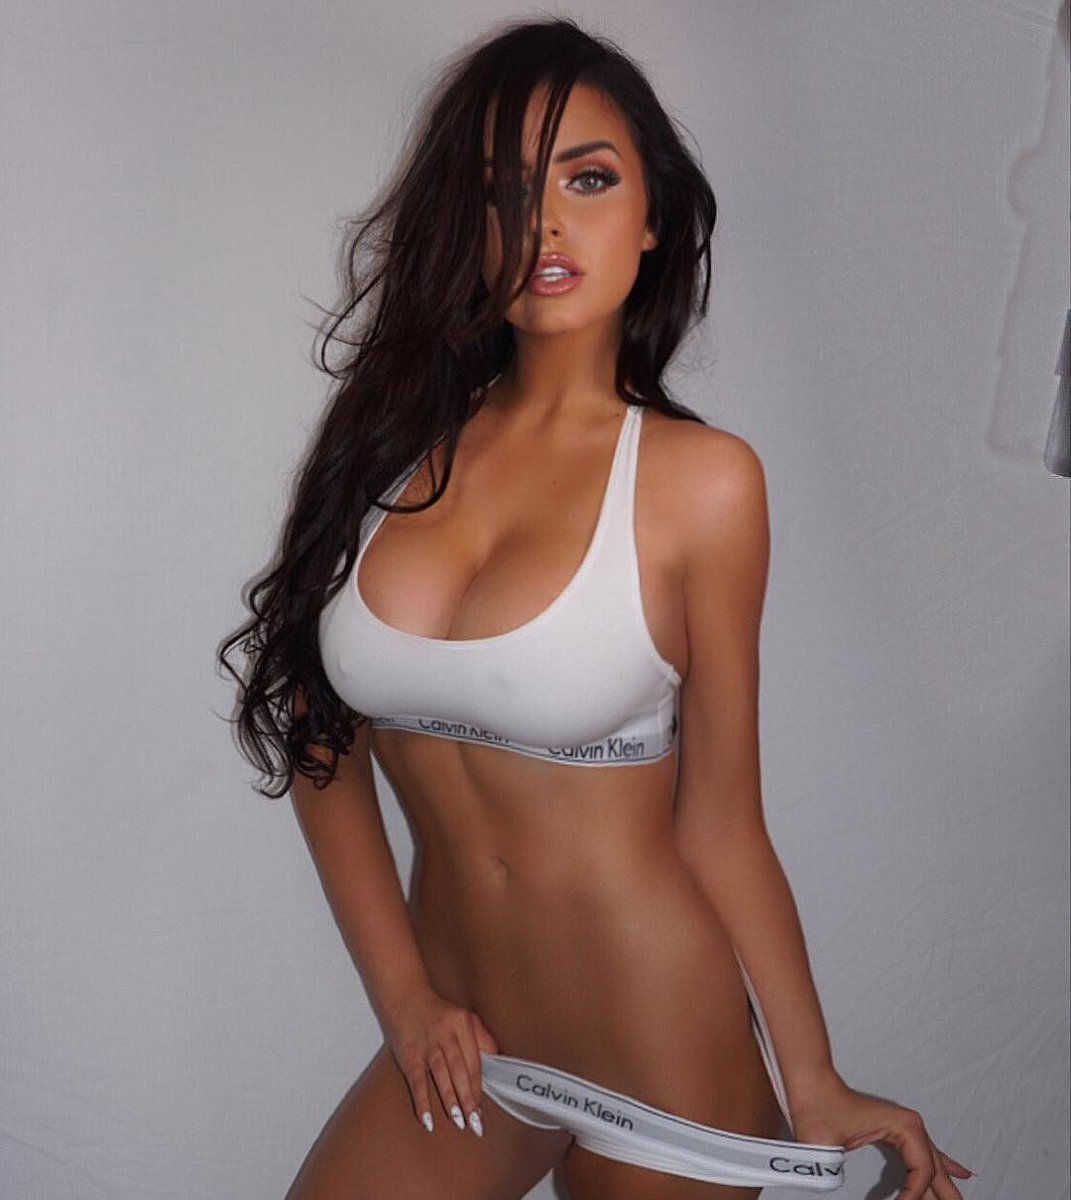 Abigail ratchford is a woman we love on instagram ...